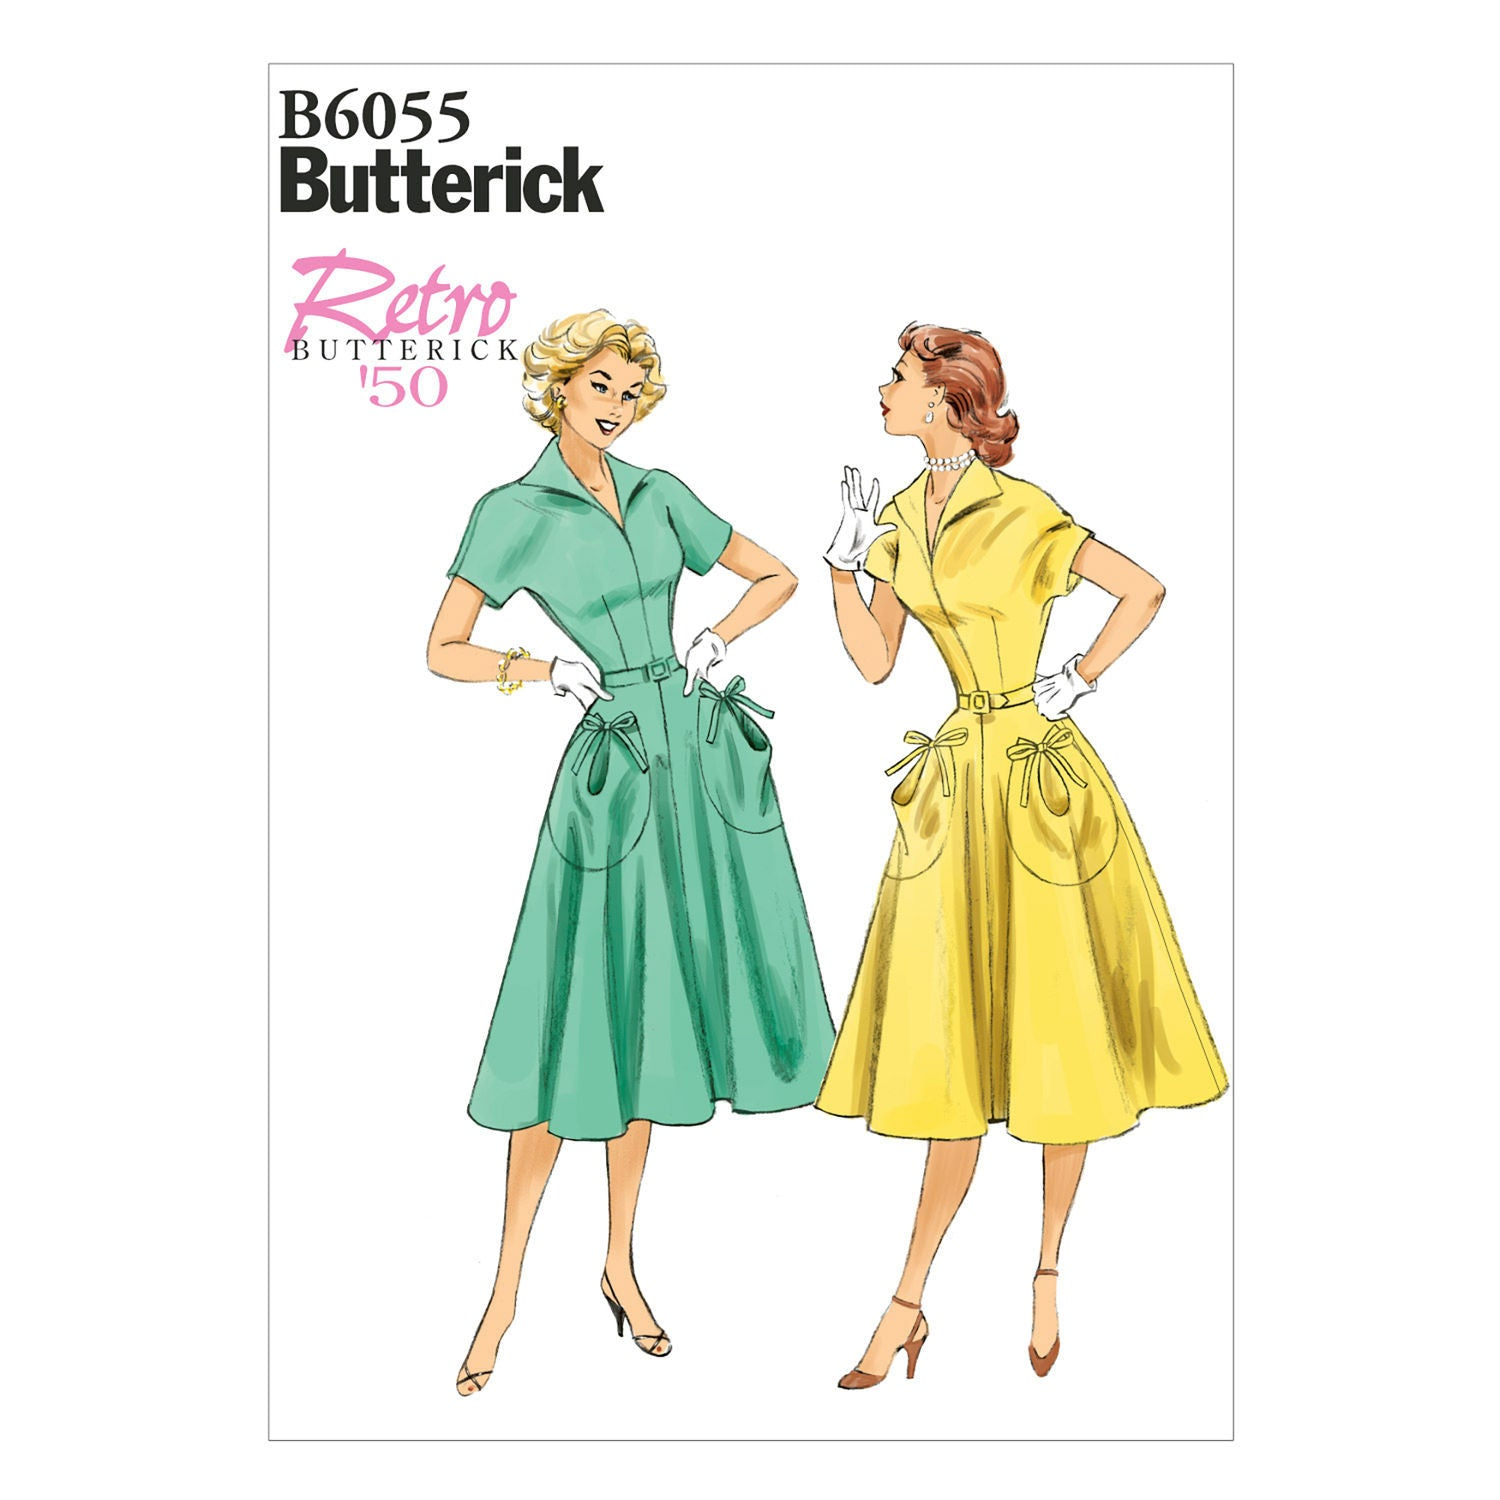 Butterick - B6055 Misses' Vintage 1950's Dress & Belt | Easy - WeaverDee.com Sewing & Crafts - 1